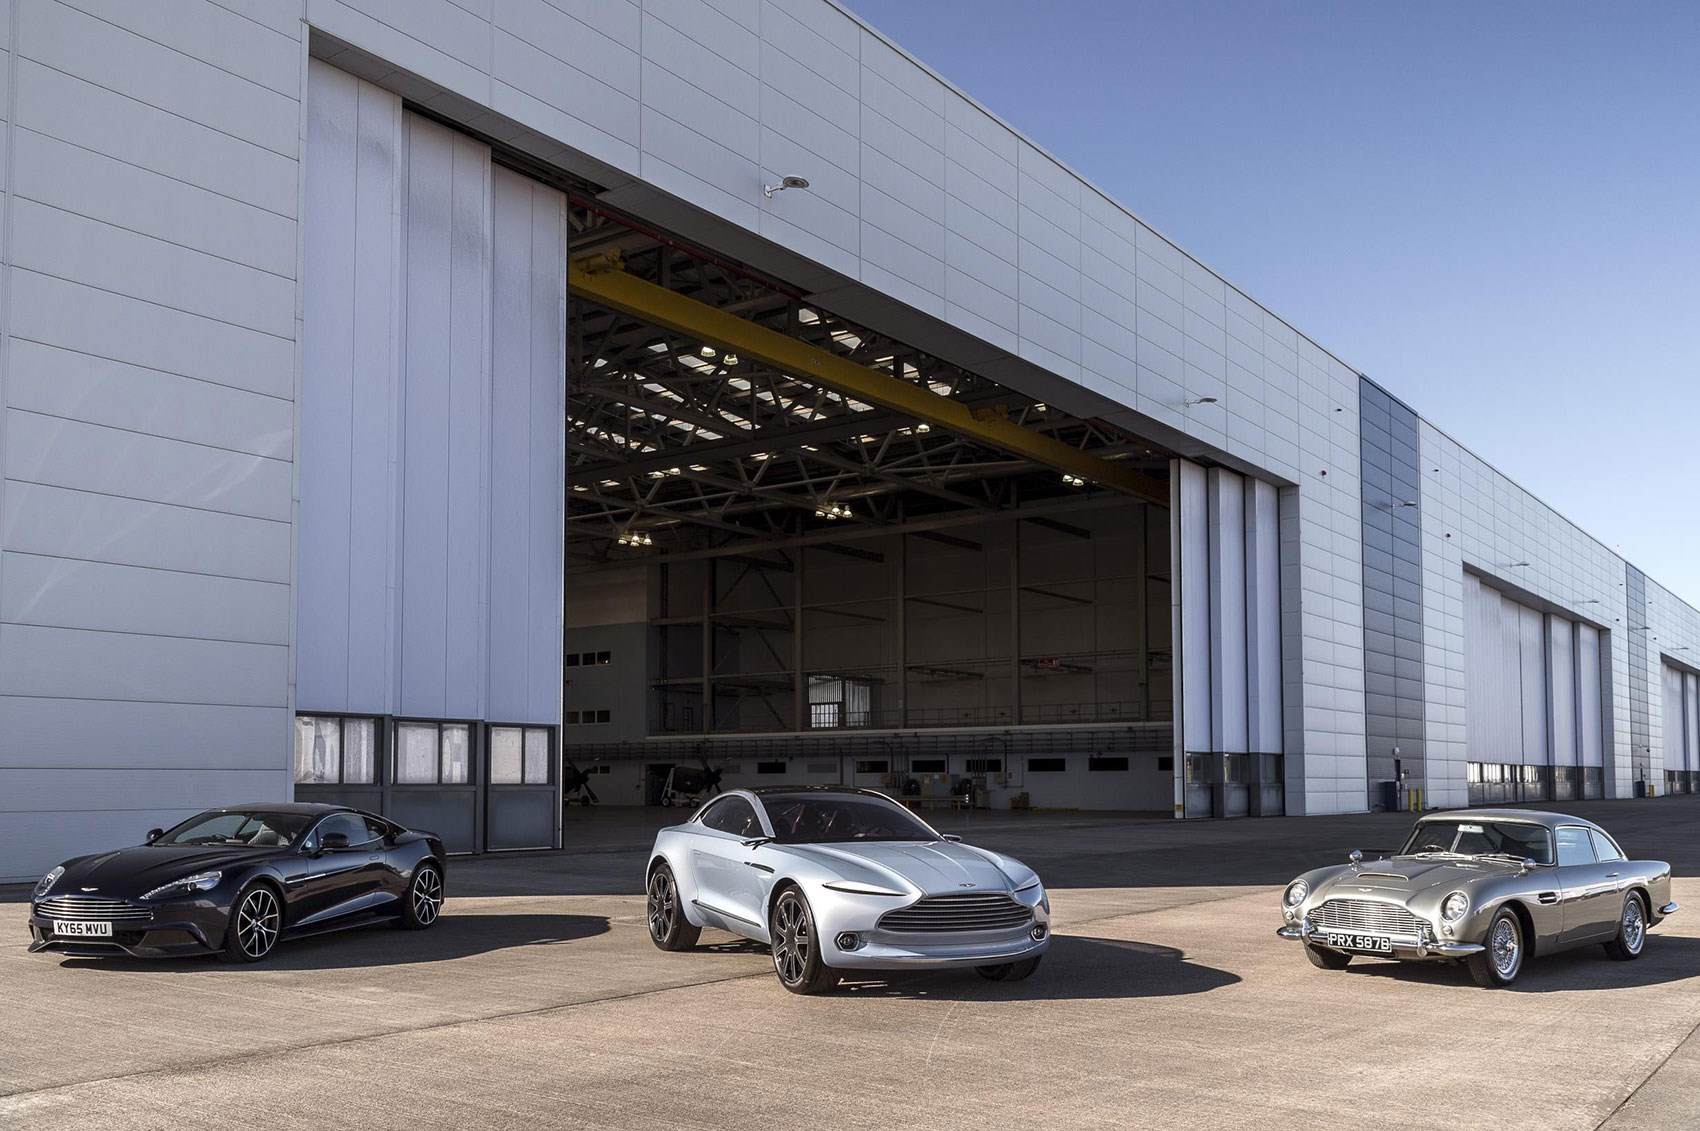 Aston Martin To Build New Factory In Wales For S DBX Crossover - Aston martin jobs